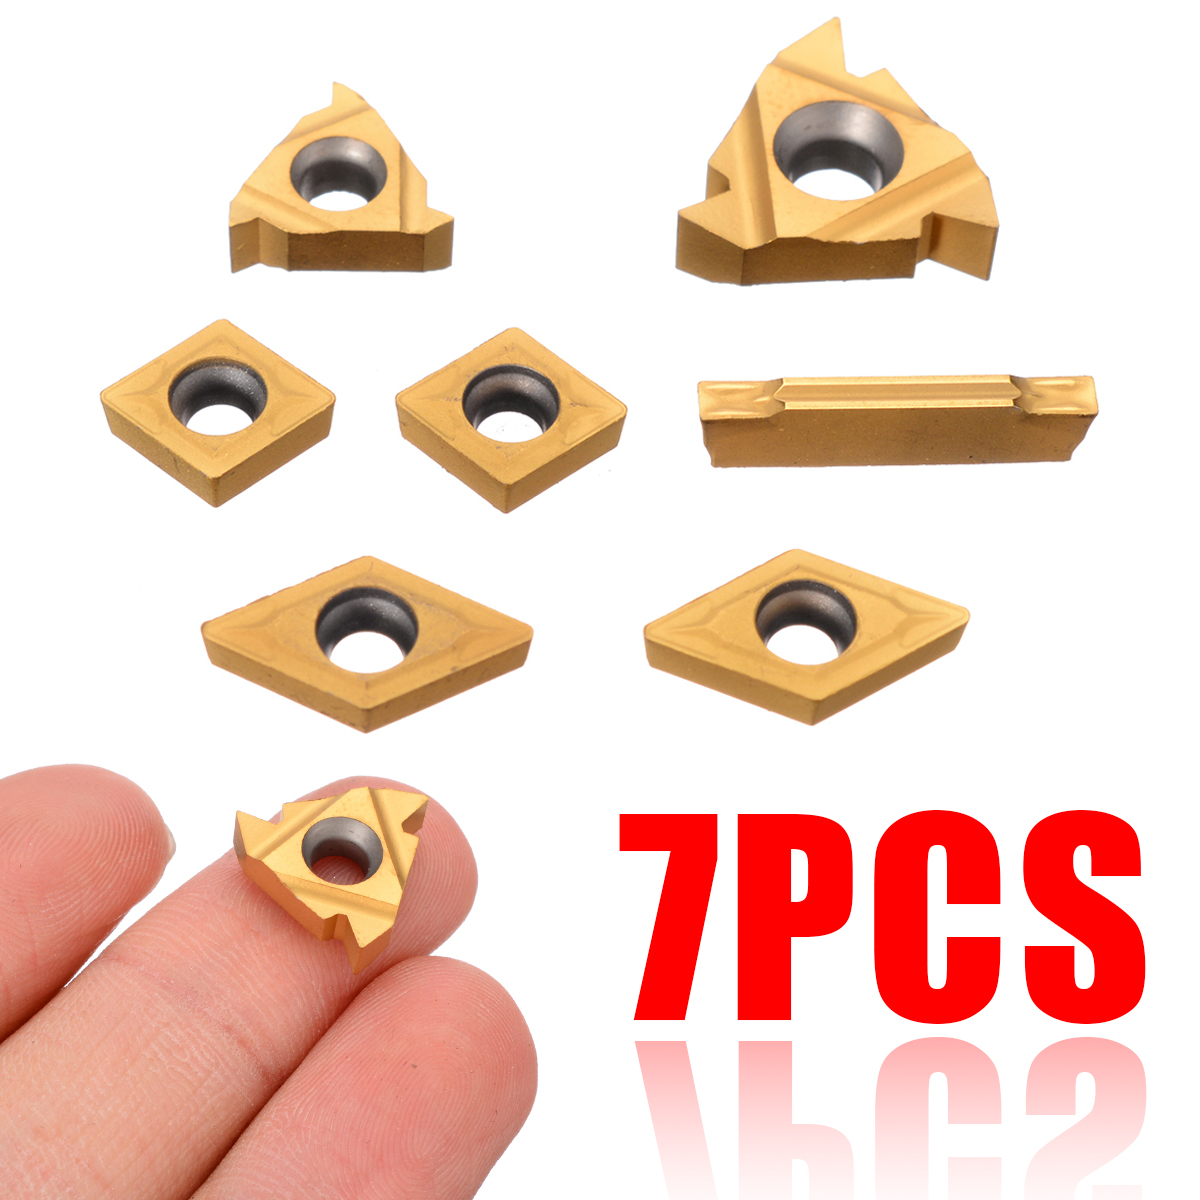 1set Carbide Inserts CCMT060204,11IR,16ER,MGMN200,DCMT070204 Internal Turning Tools Lathe Tools Cutter